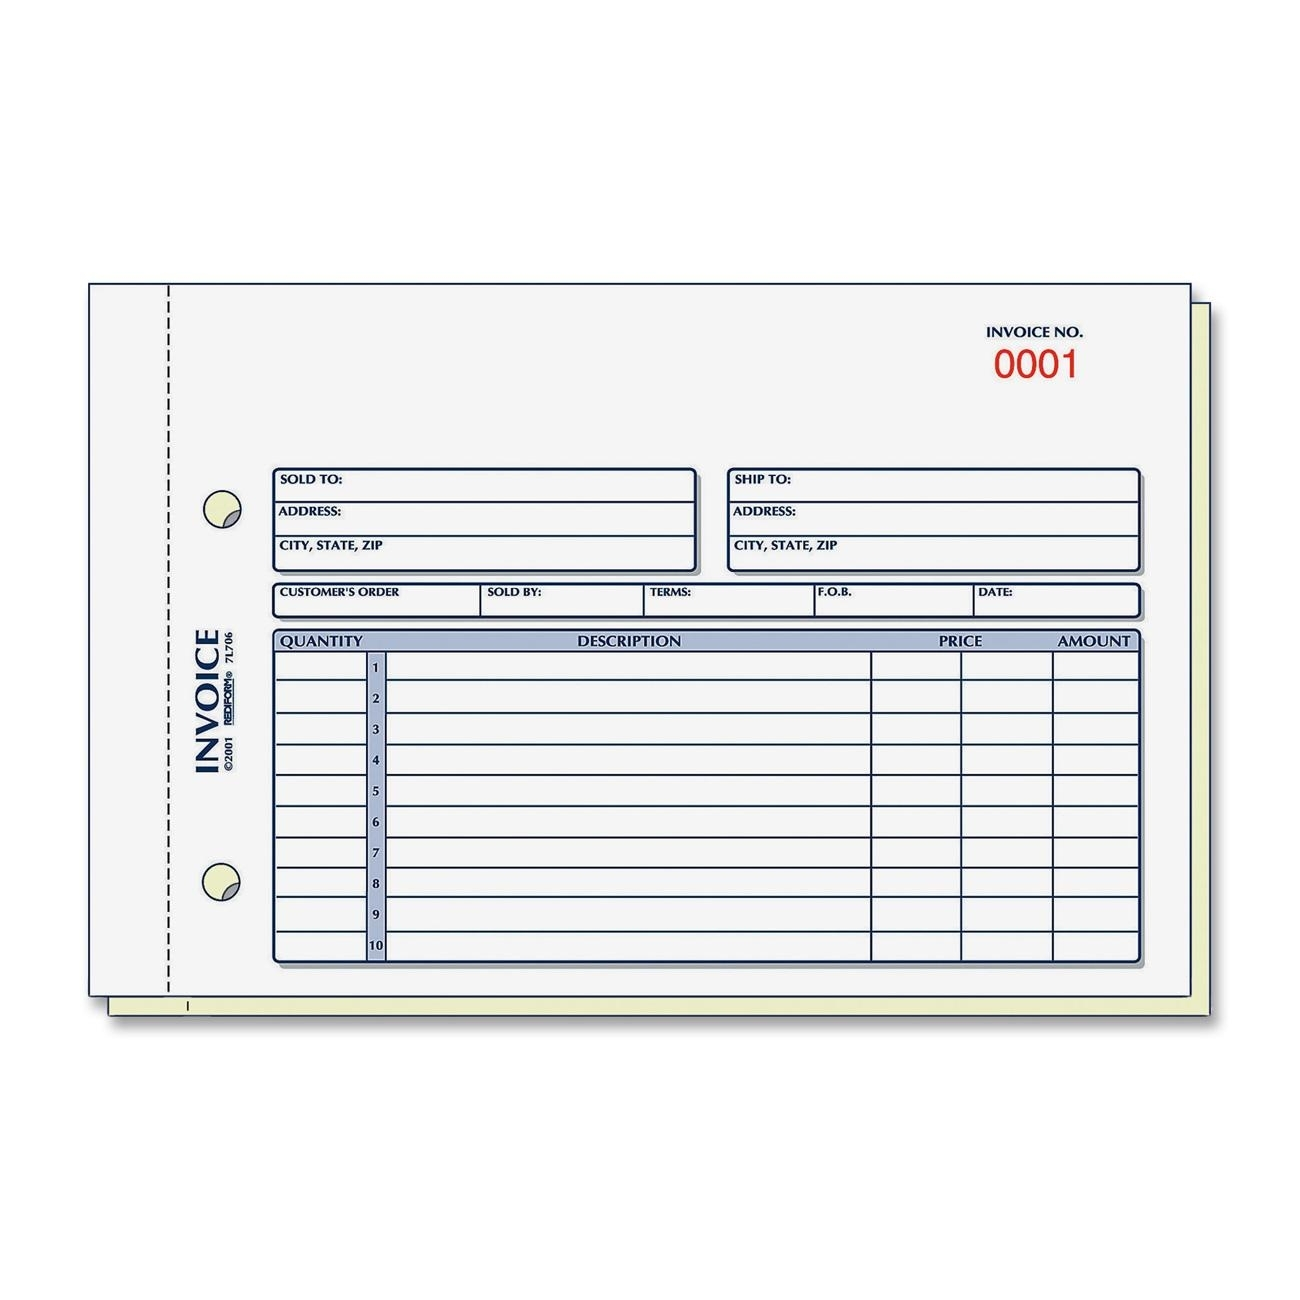 form of invoice discount red7l721 rediform 7l721 rediform invoice form invoice book 1300 X 1300